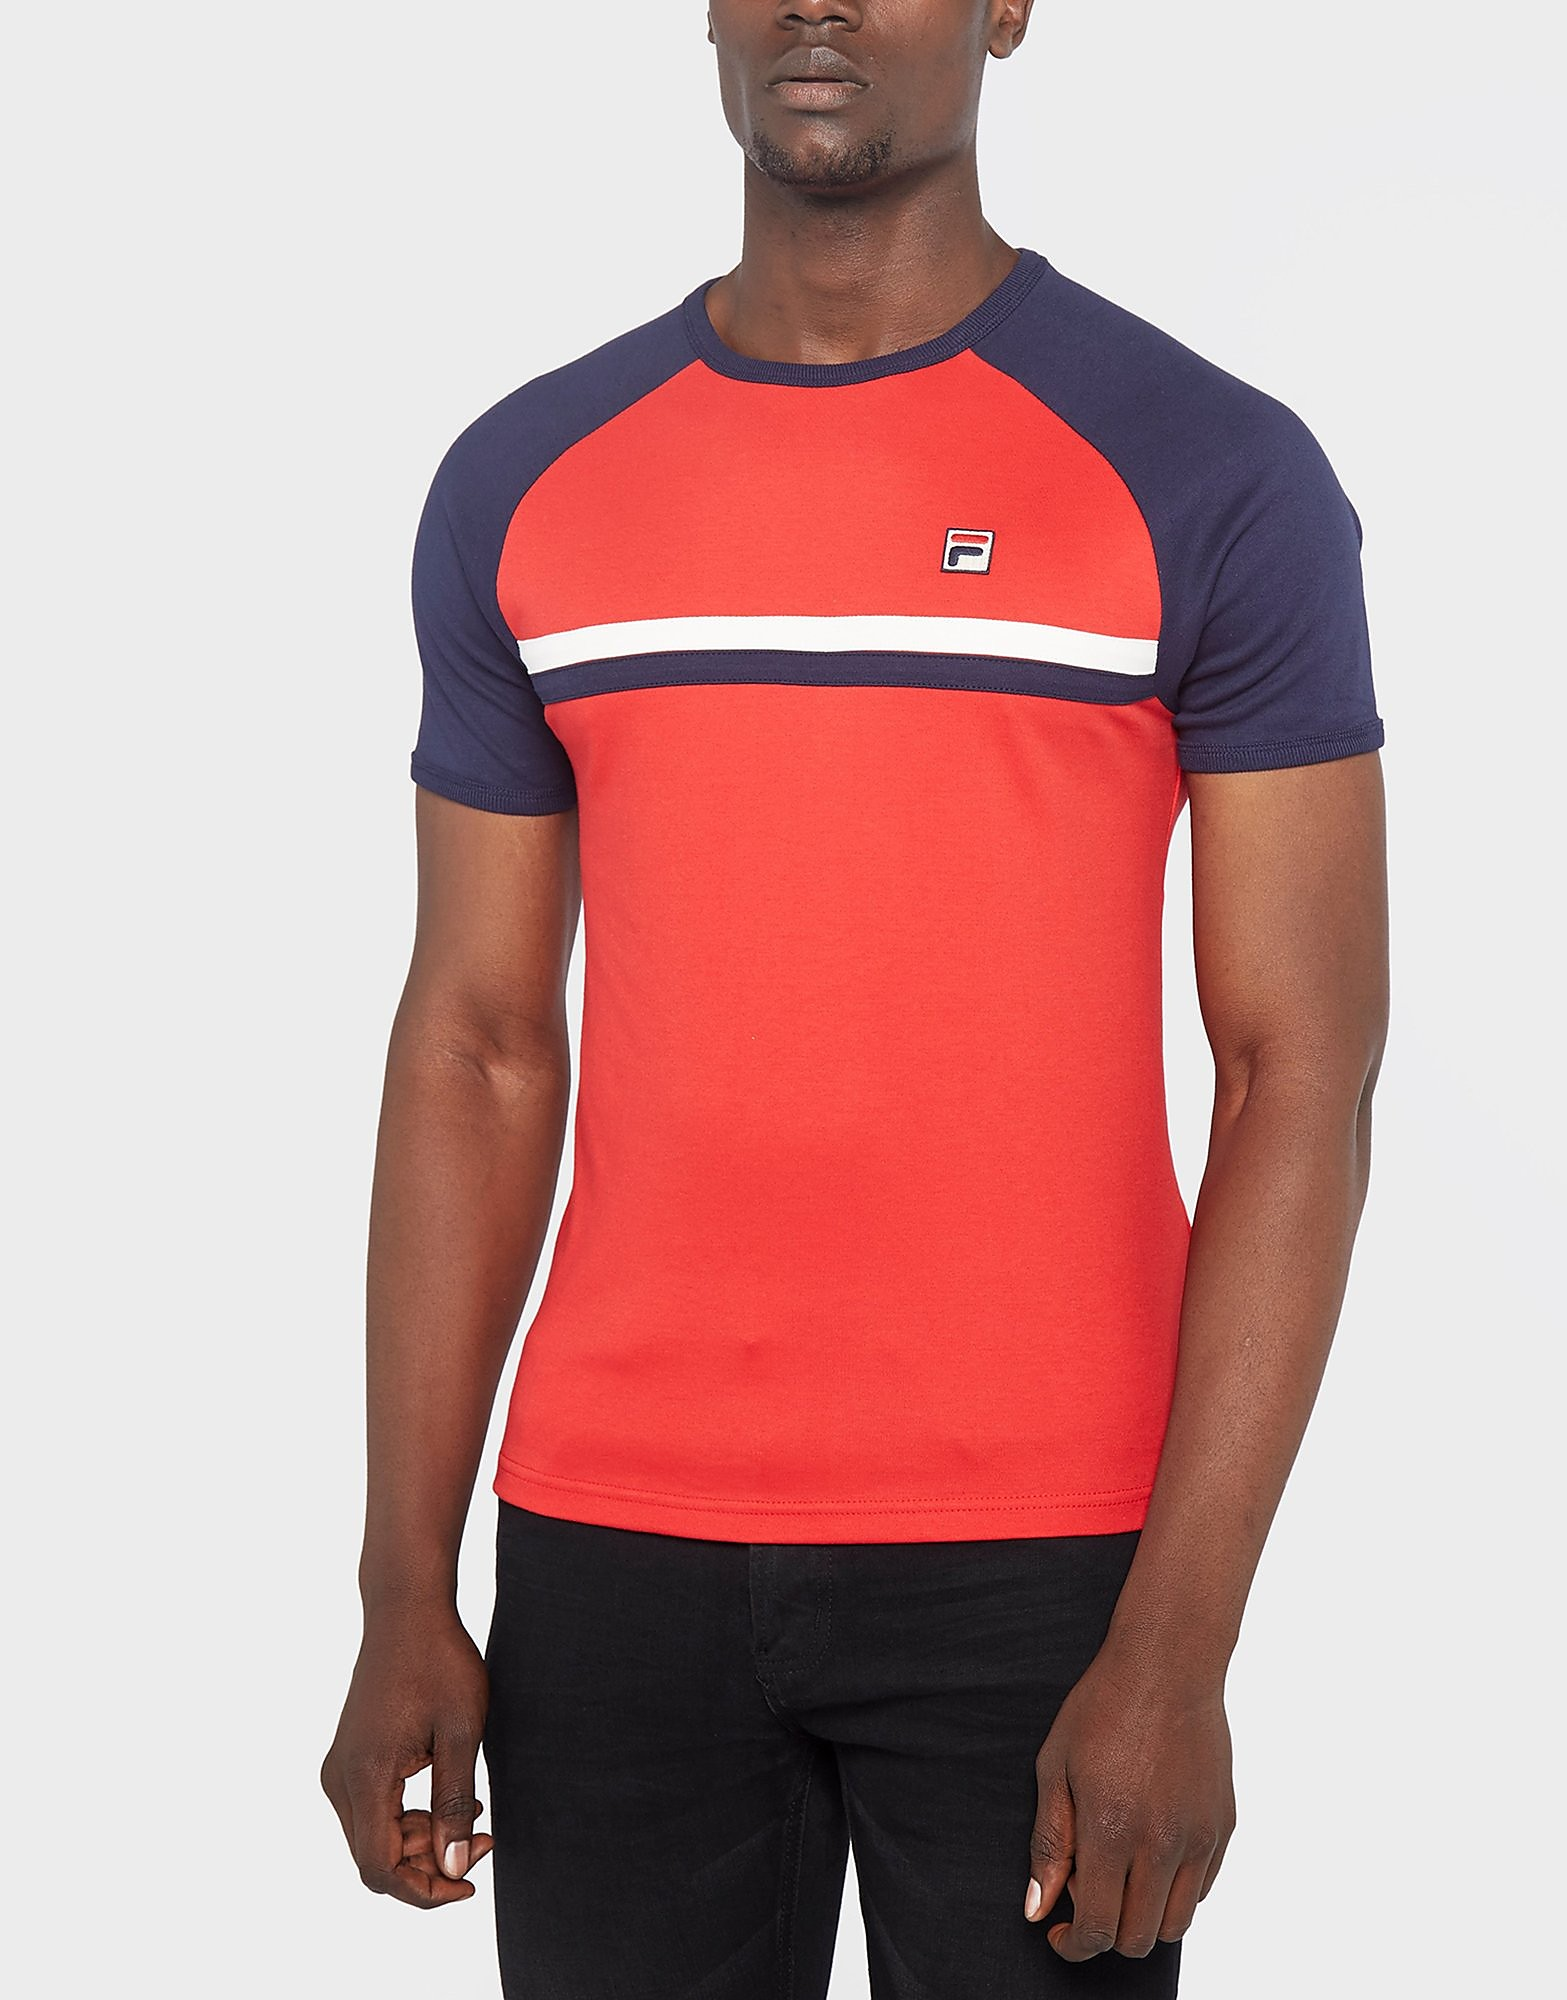 Fila Carezza Rag T-Shirt